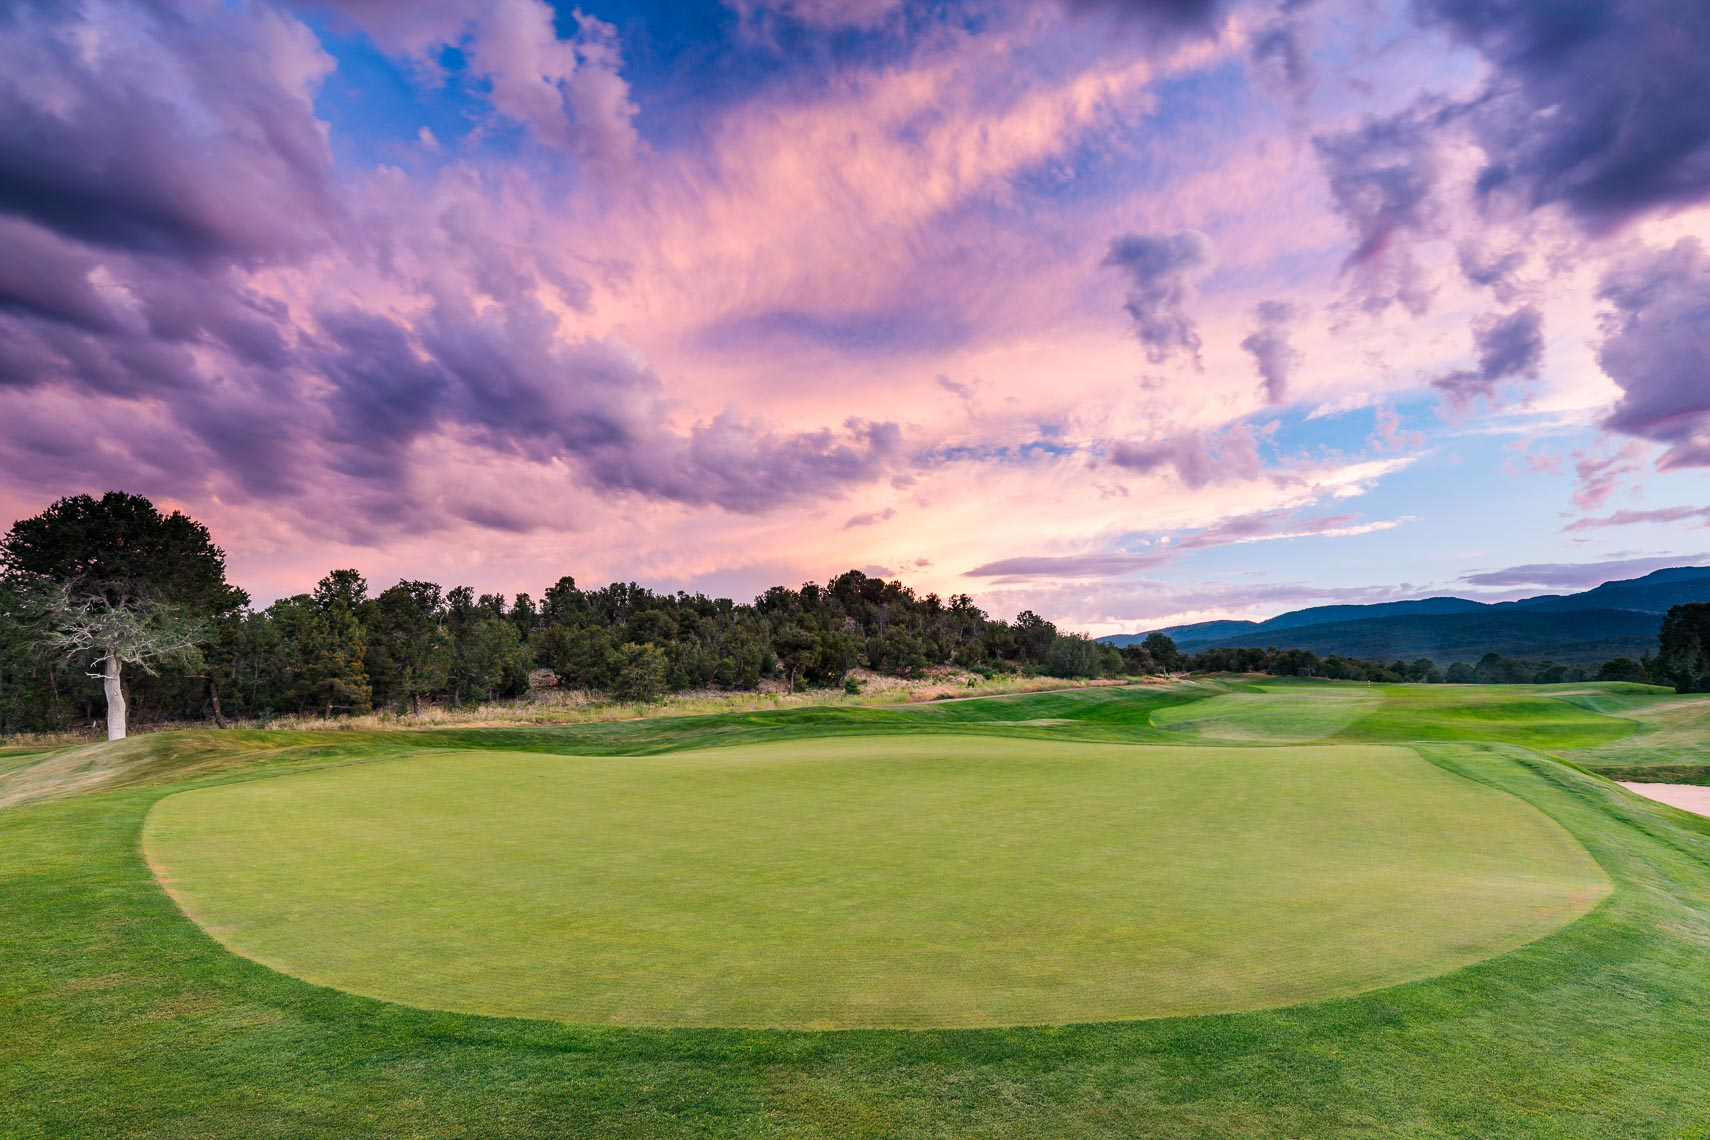 New Mexico Golf Course The Greens Sunrise | Michael DeYoung